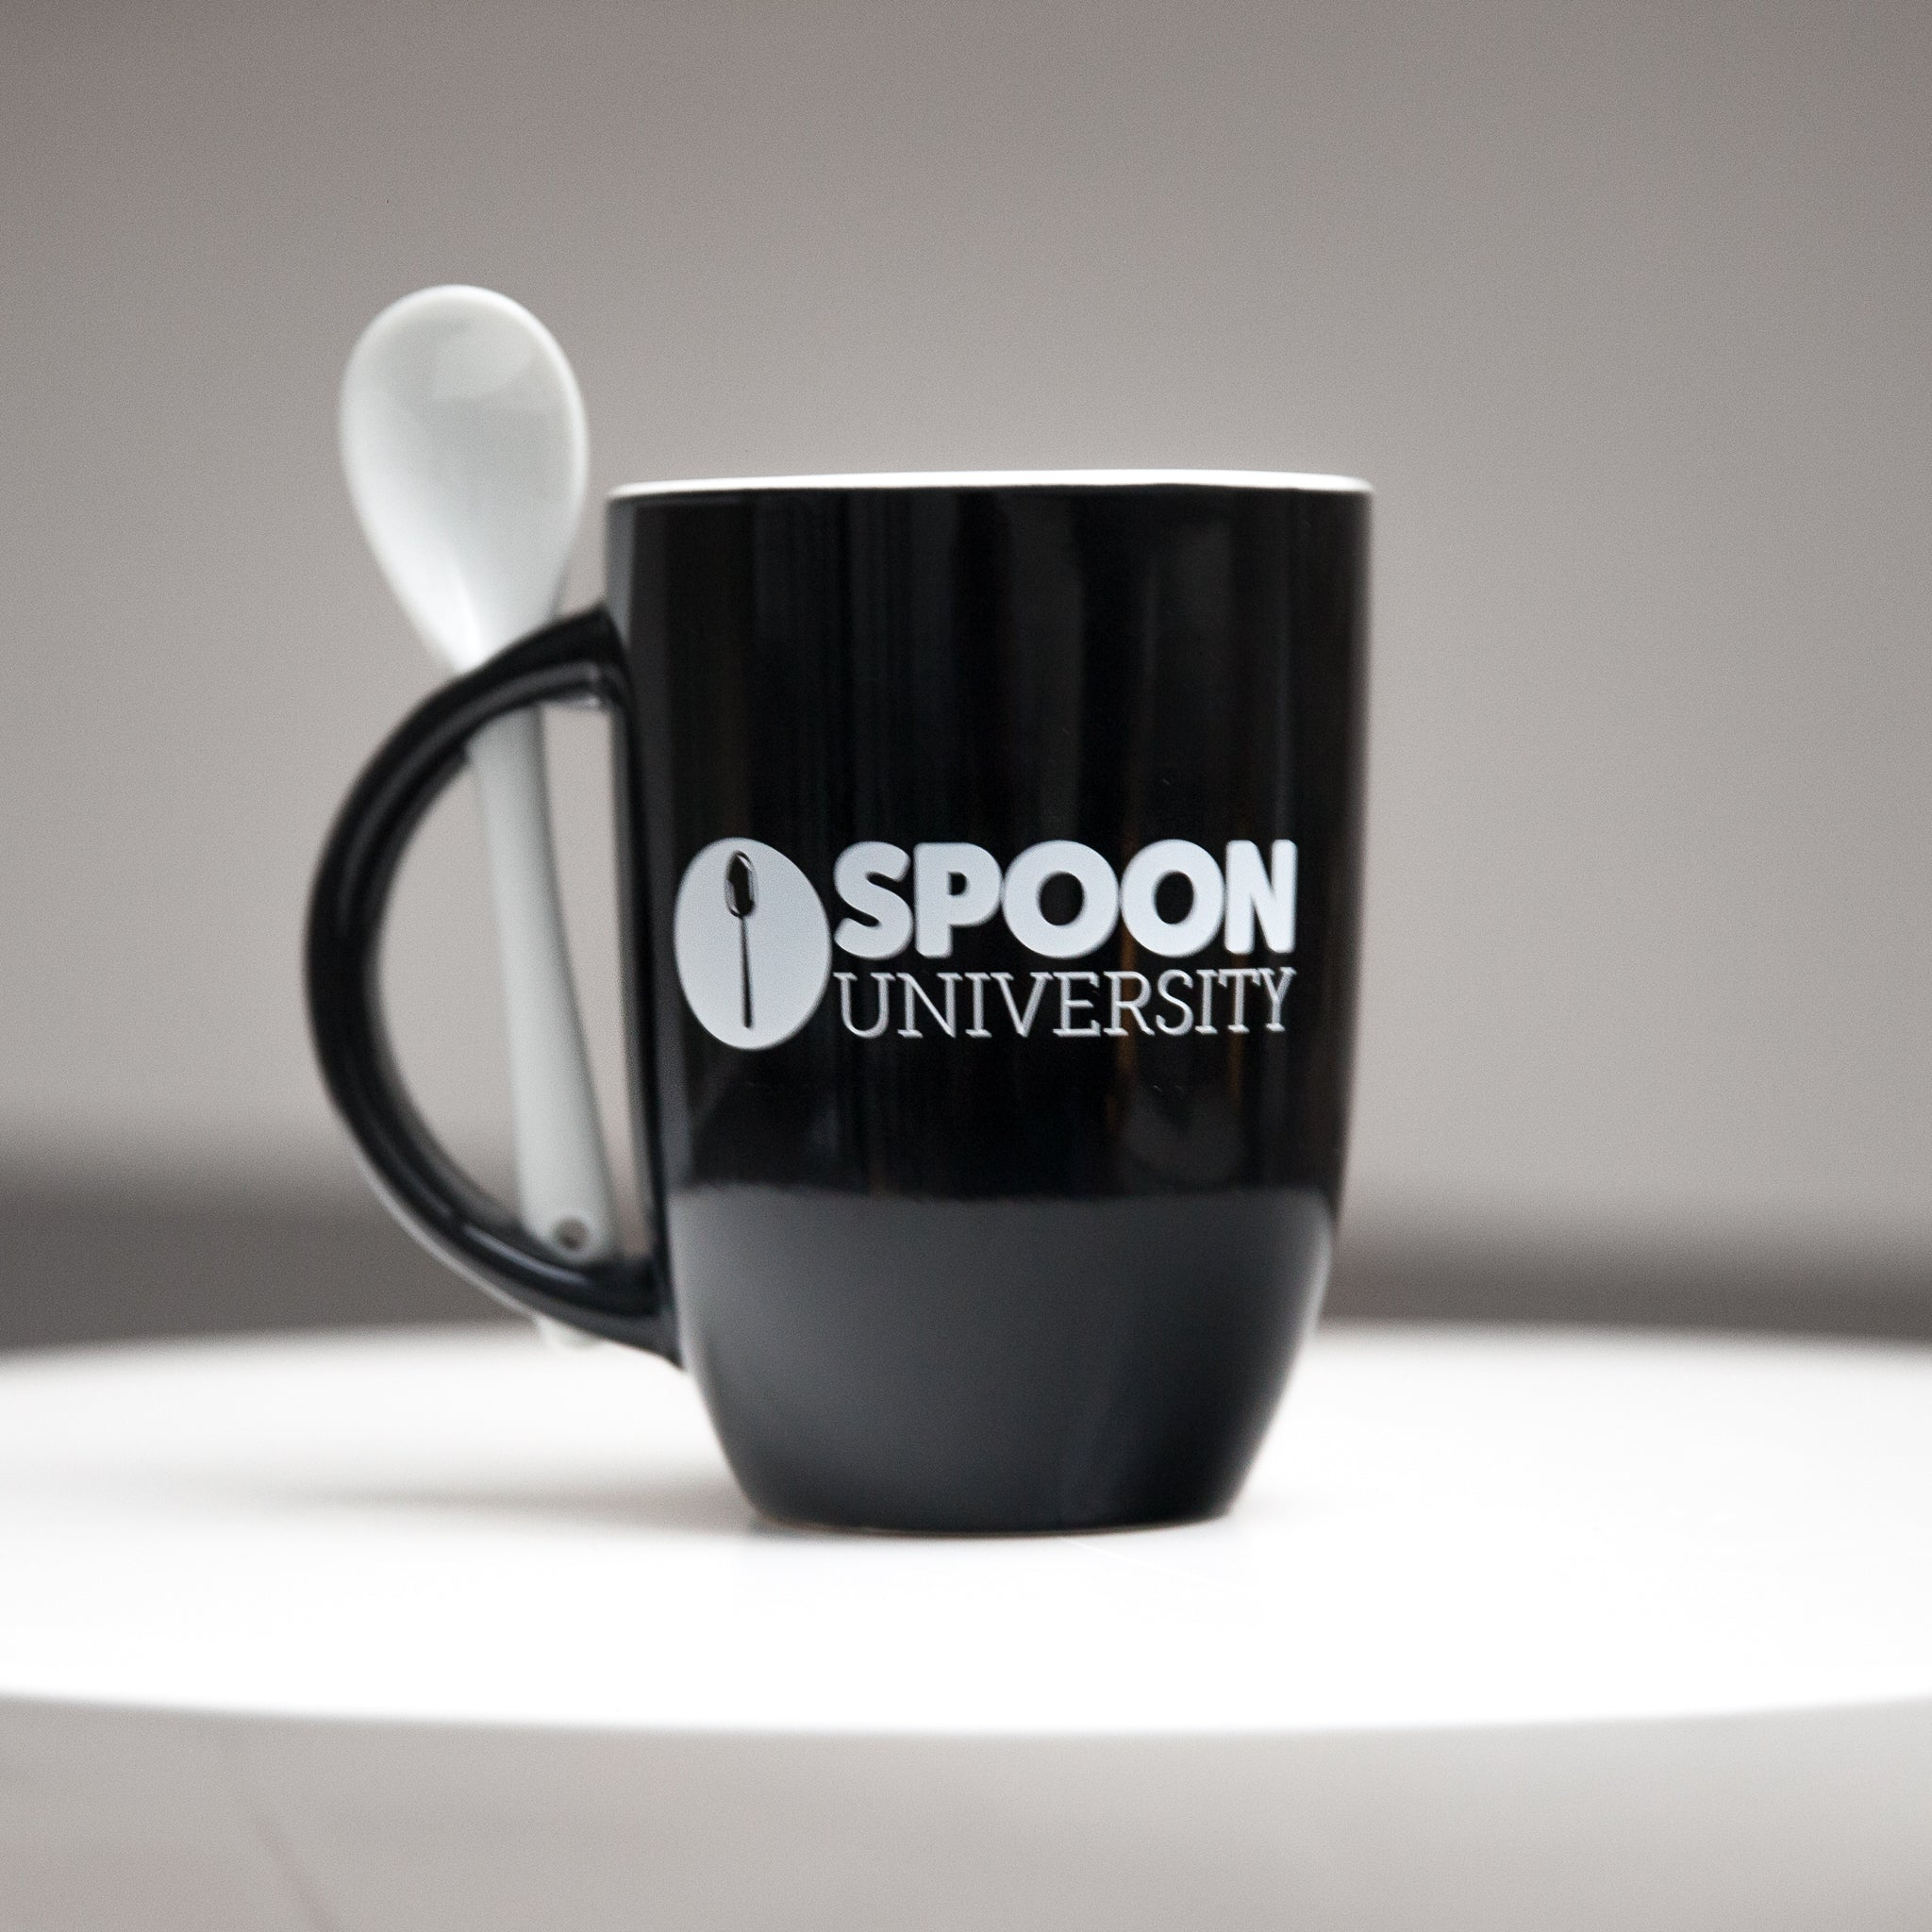 Spoon-er Mug (12 oz.)